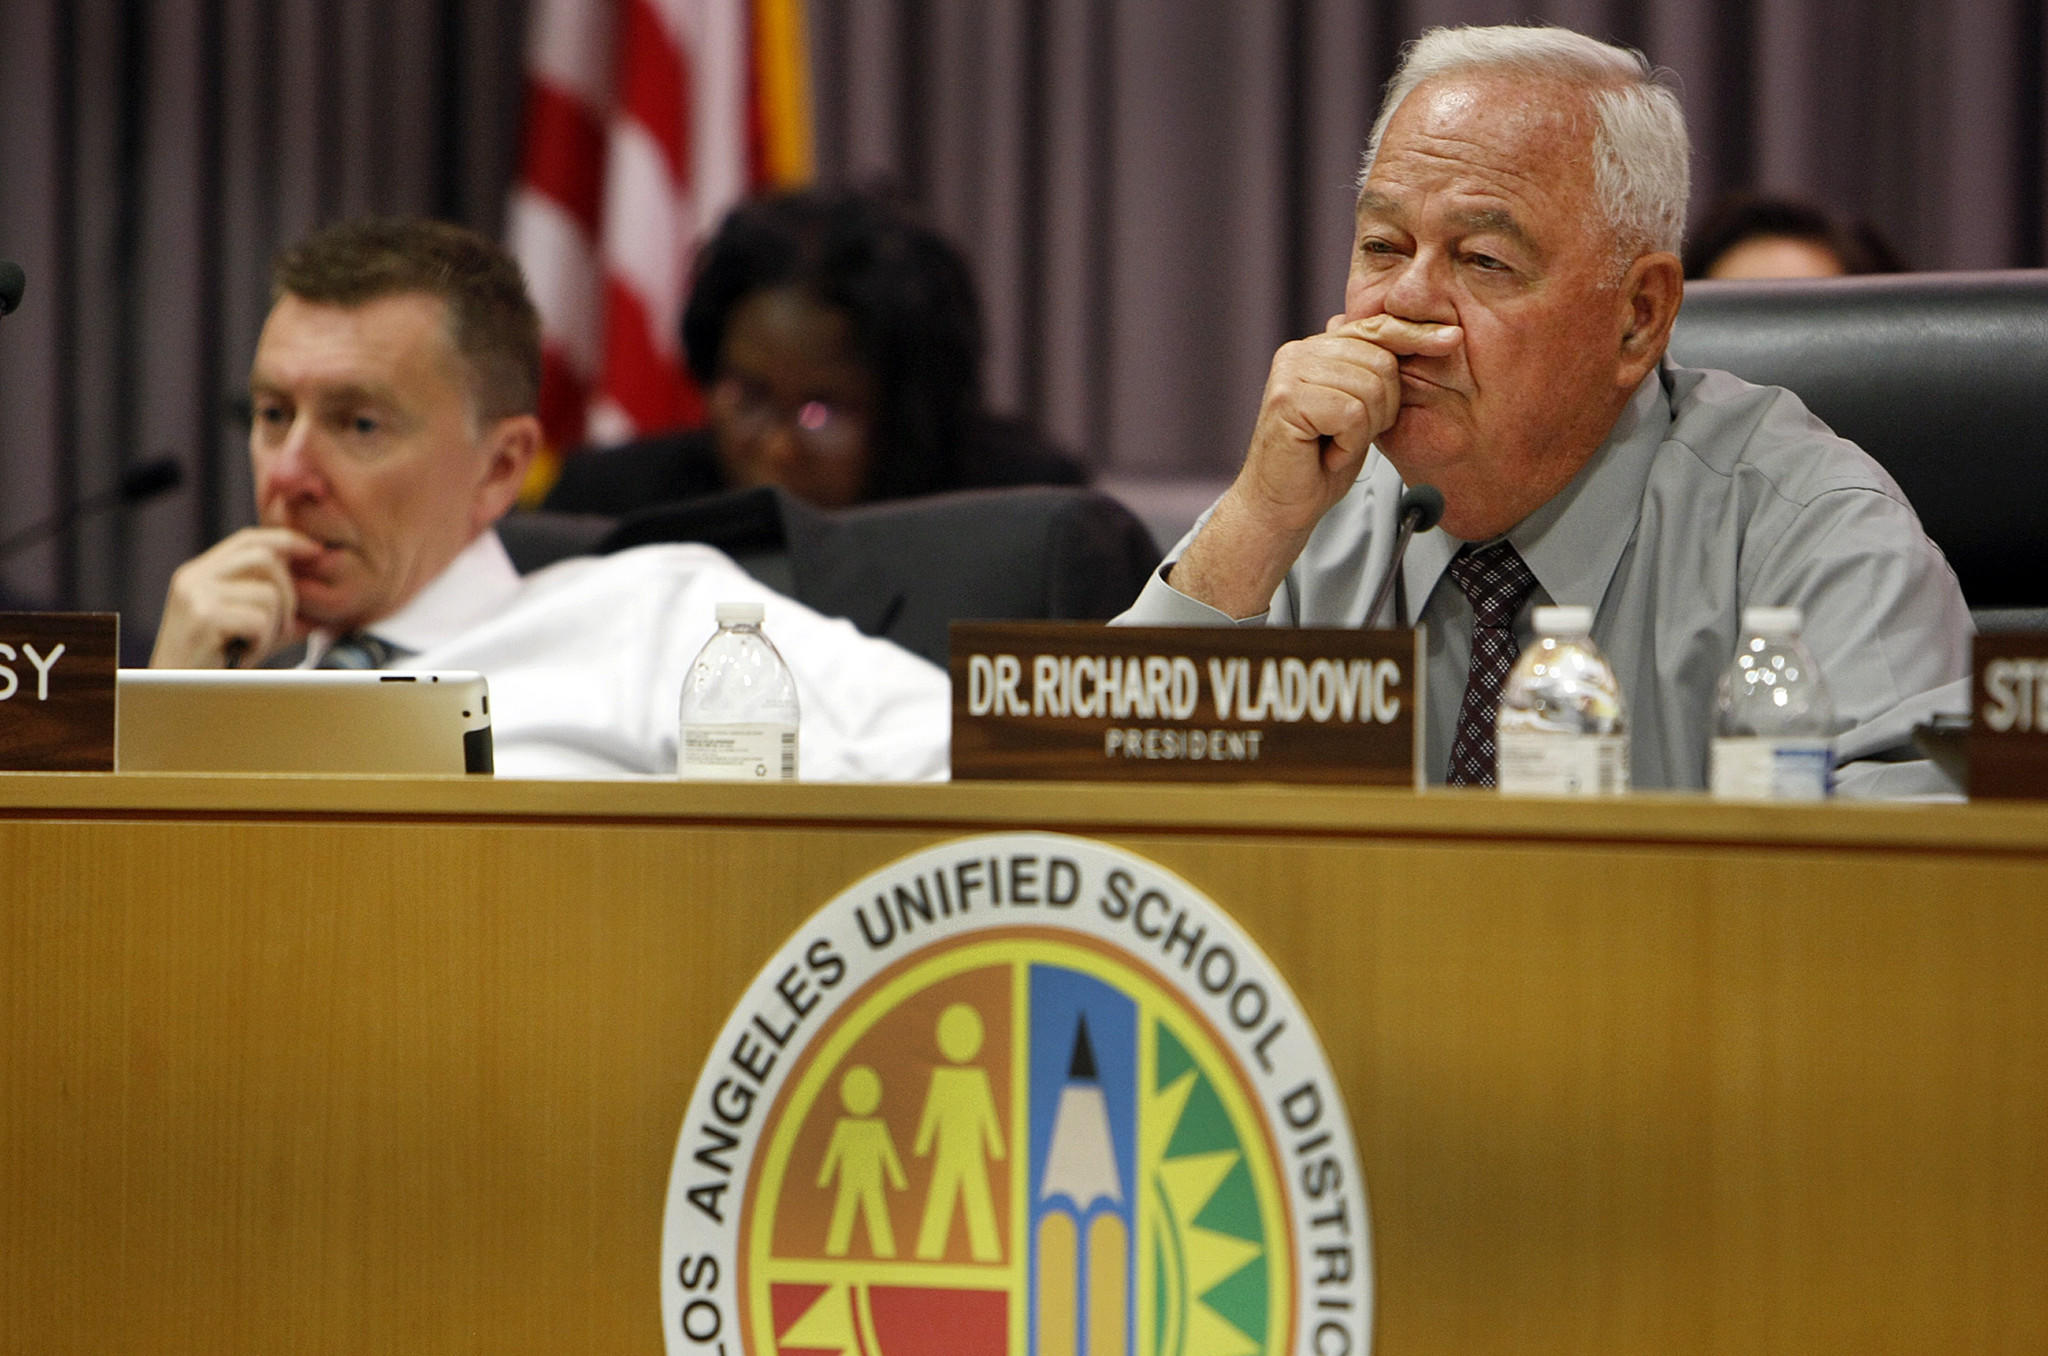 Supt. John Deasy, left, and Richard Vladovic listen during a board meeting. The four schools -- formerly known as Collins Street, Highlander, Oso and Platt Ranch elementaries -- have been closed for 30 years and require extensive renovations.